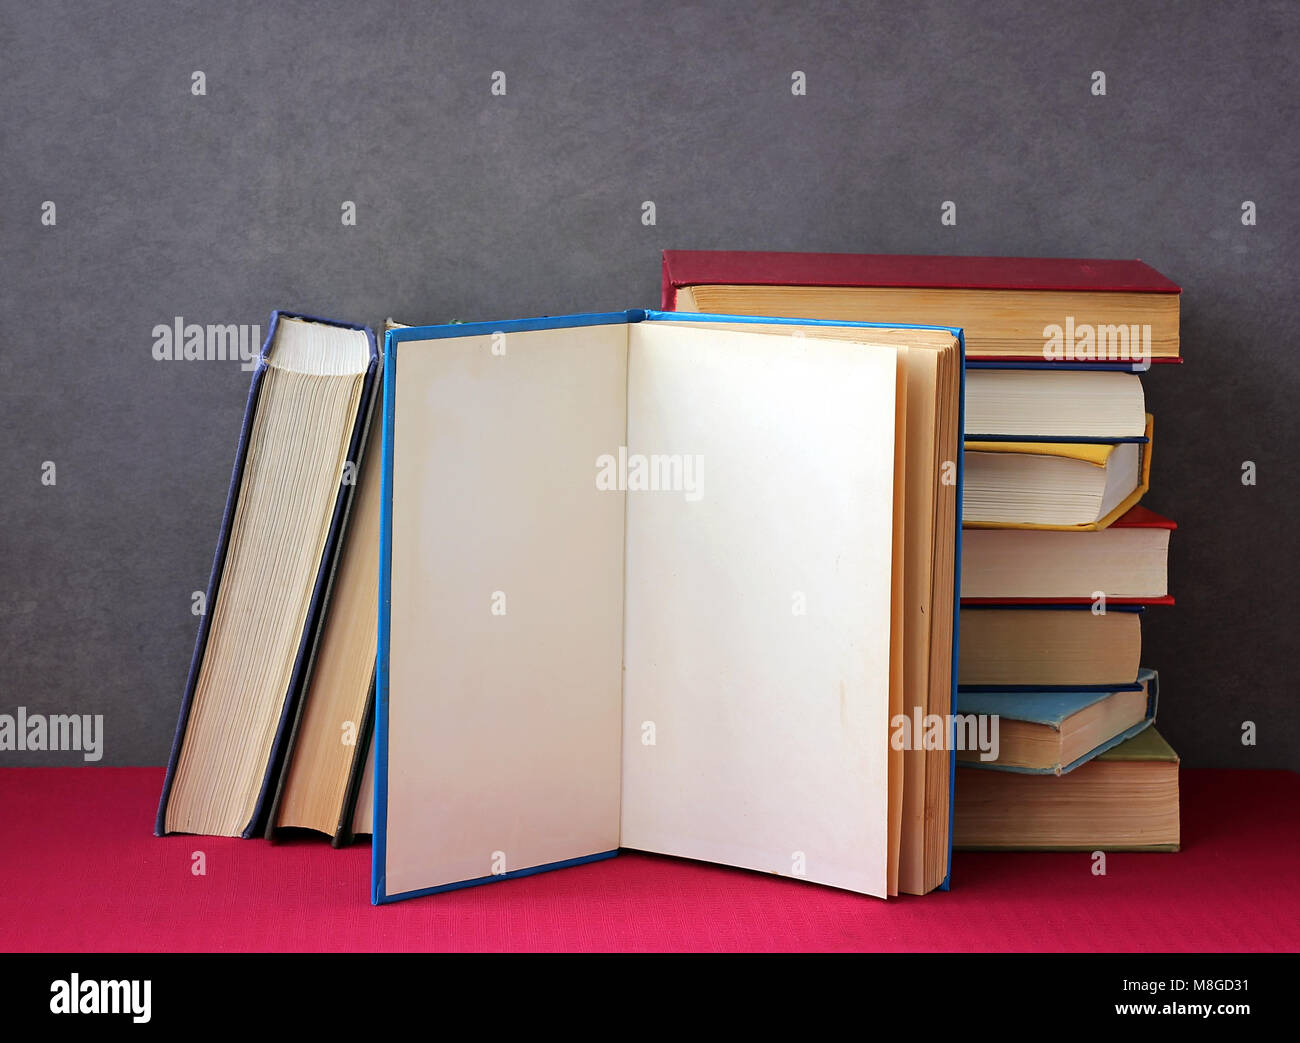 Stack of books in the colored covers on the table with a red tablecloth. Still life with books. - Stock Image